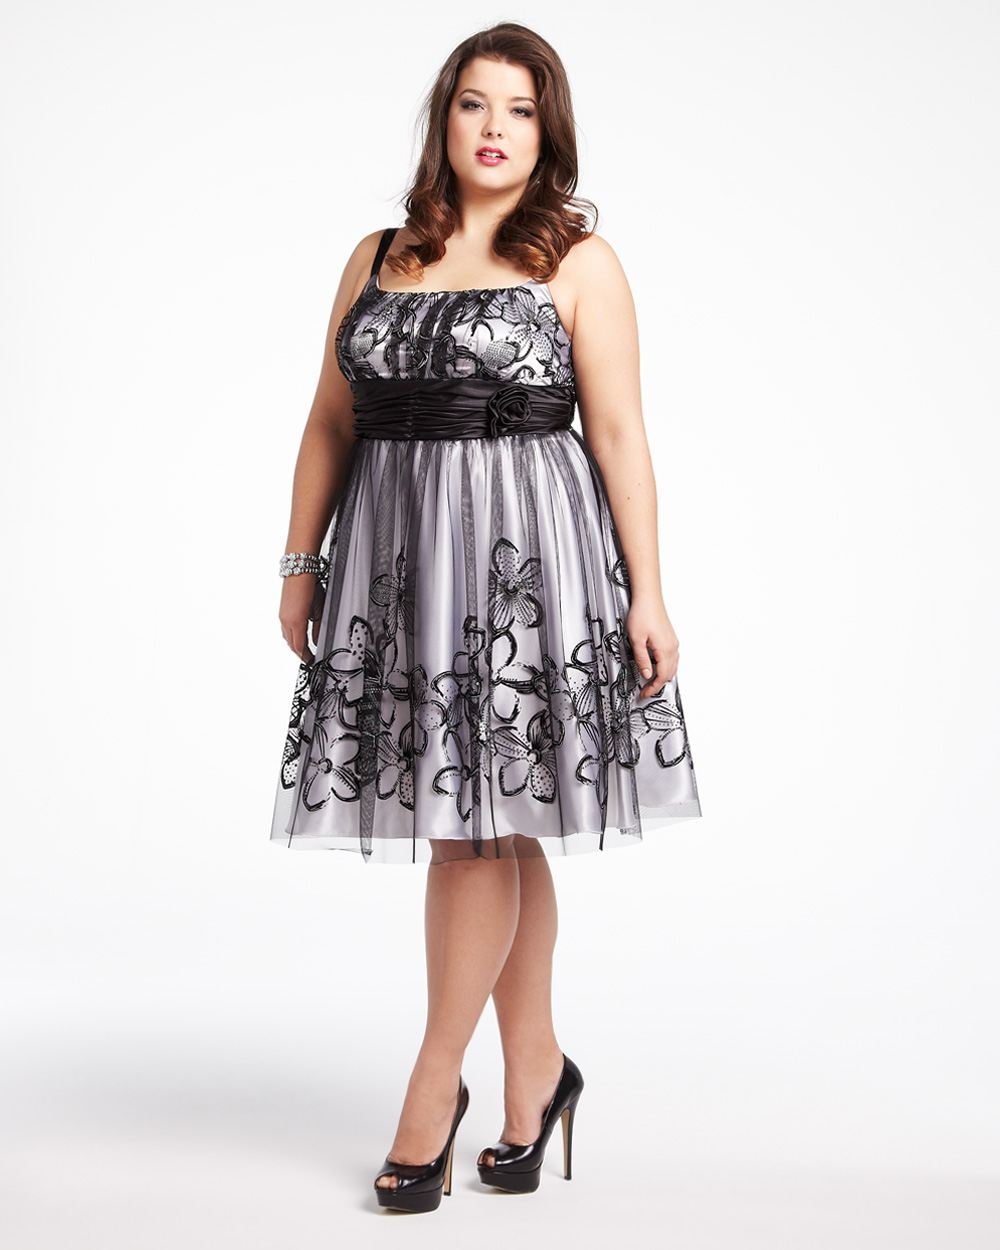 Plus Size Dresses At Dressbarn